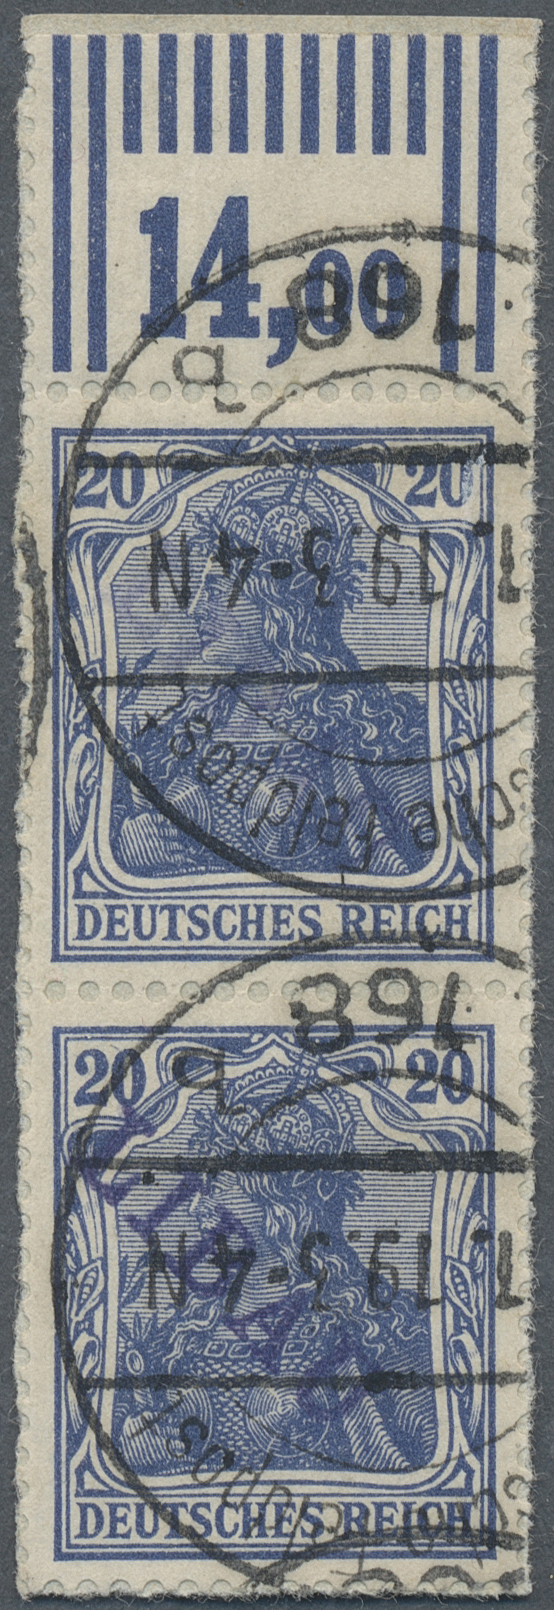 Lot 18862 - Deutsche Besetzung I. WK: Postgebiet Ober. Ost - Libau  -  Auktionshaus Christoph Gärtner GmbH & Co. KG Auction #40 Germany, Picture Post Cards, Collections Overseas, Thematics